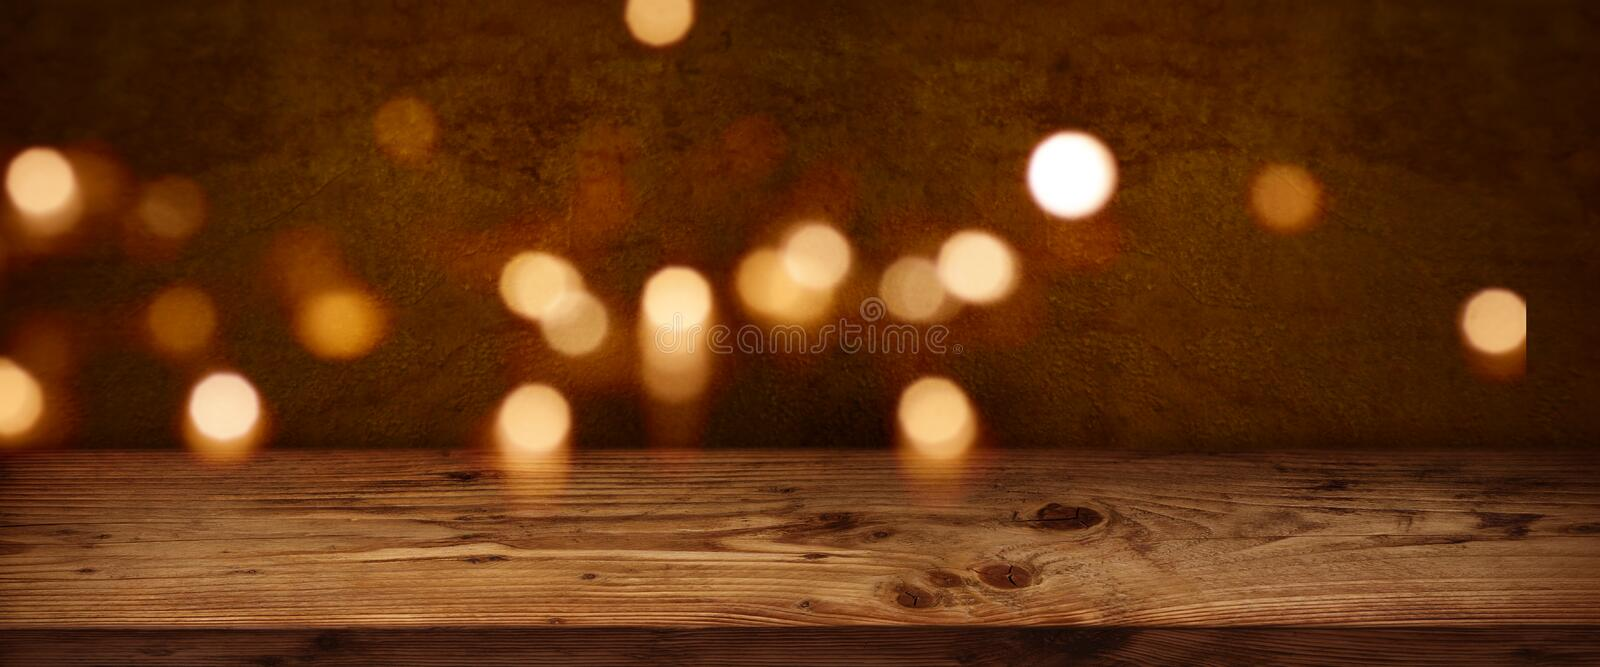 Festive christmas background with wooden table royalty free stock image